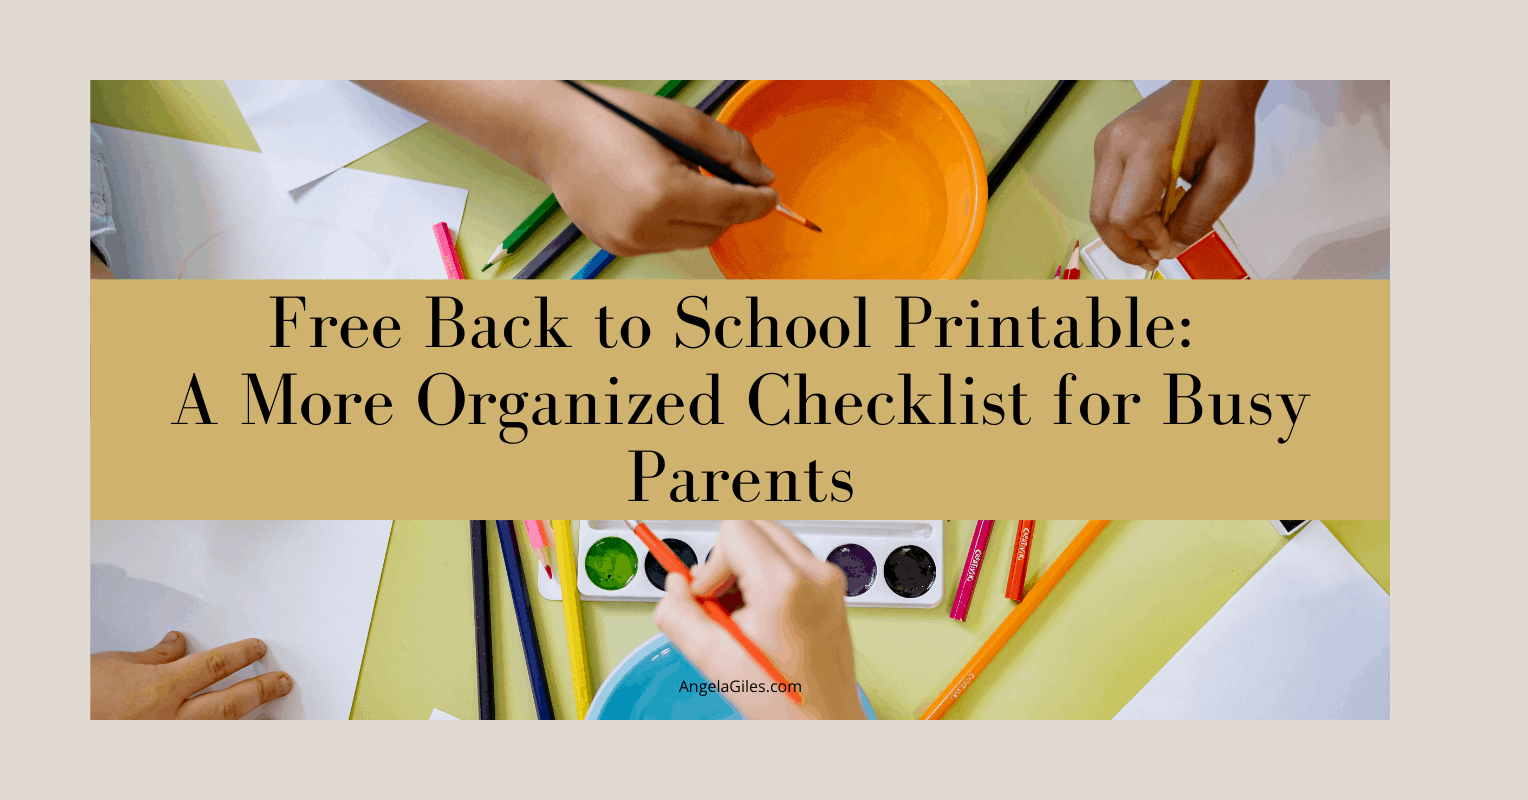 Free Back to School Printable: A More Organized Checklist for Busy Parents